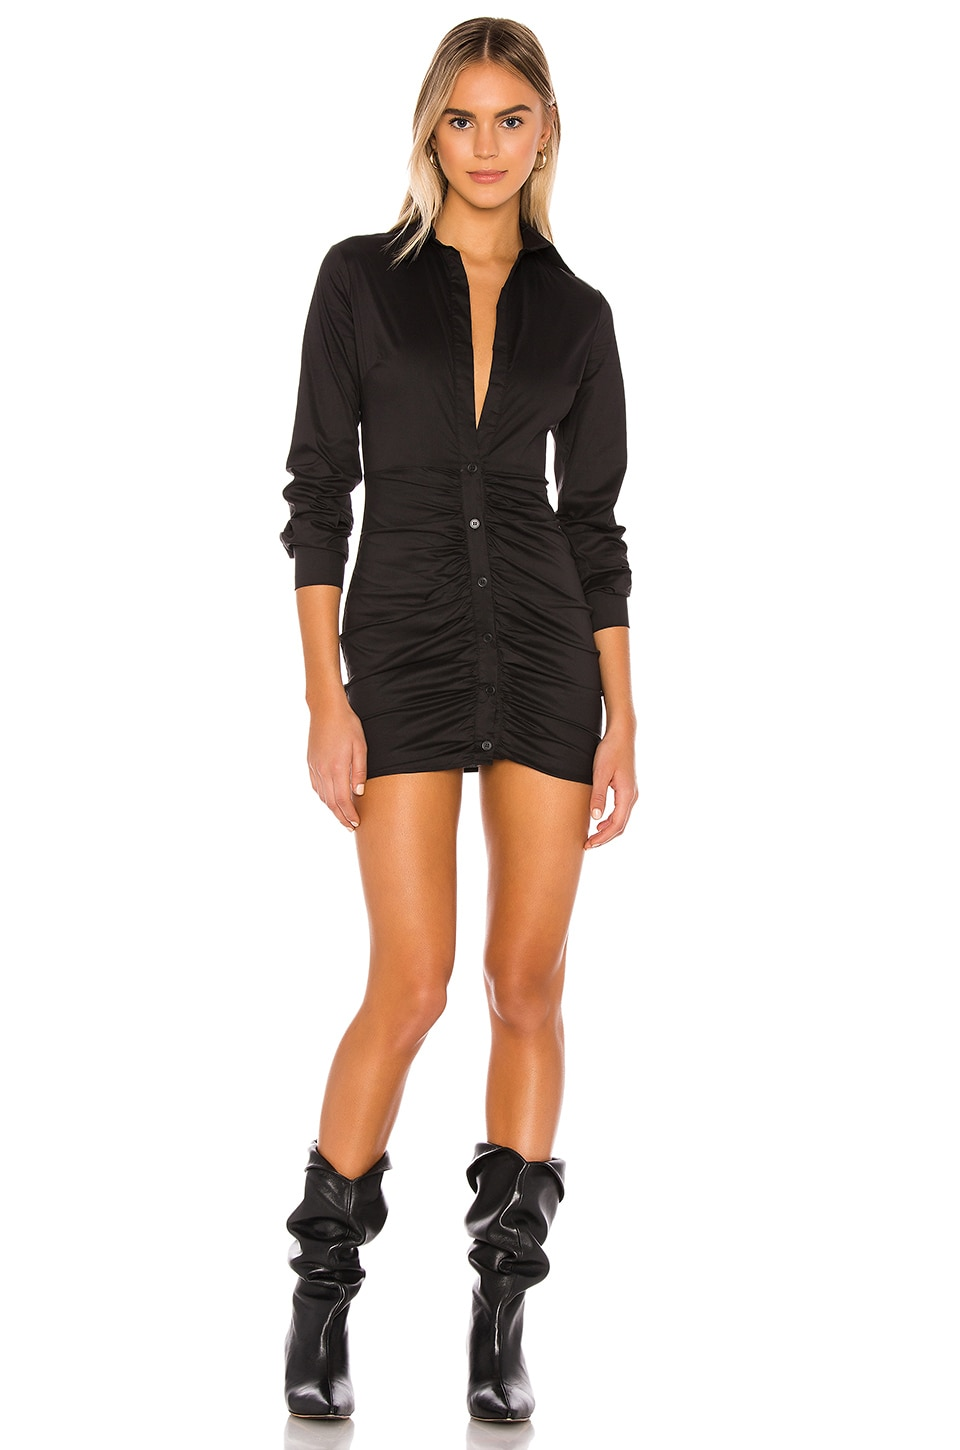 Colette Ruched Shirt Dress                   superdown                                                                                                                             CA$ 86.31 35